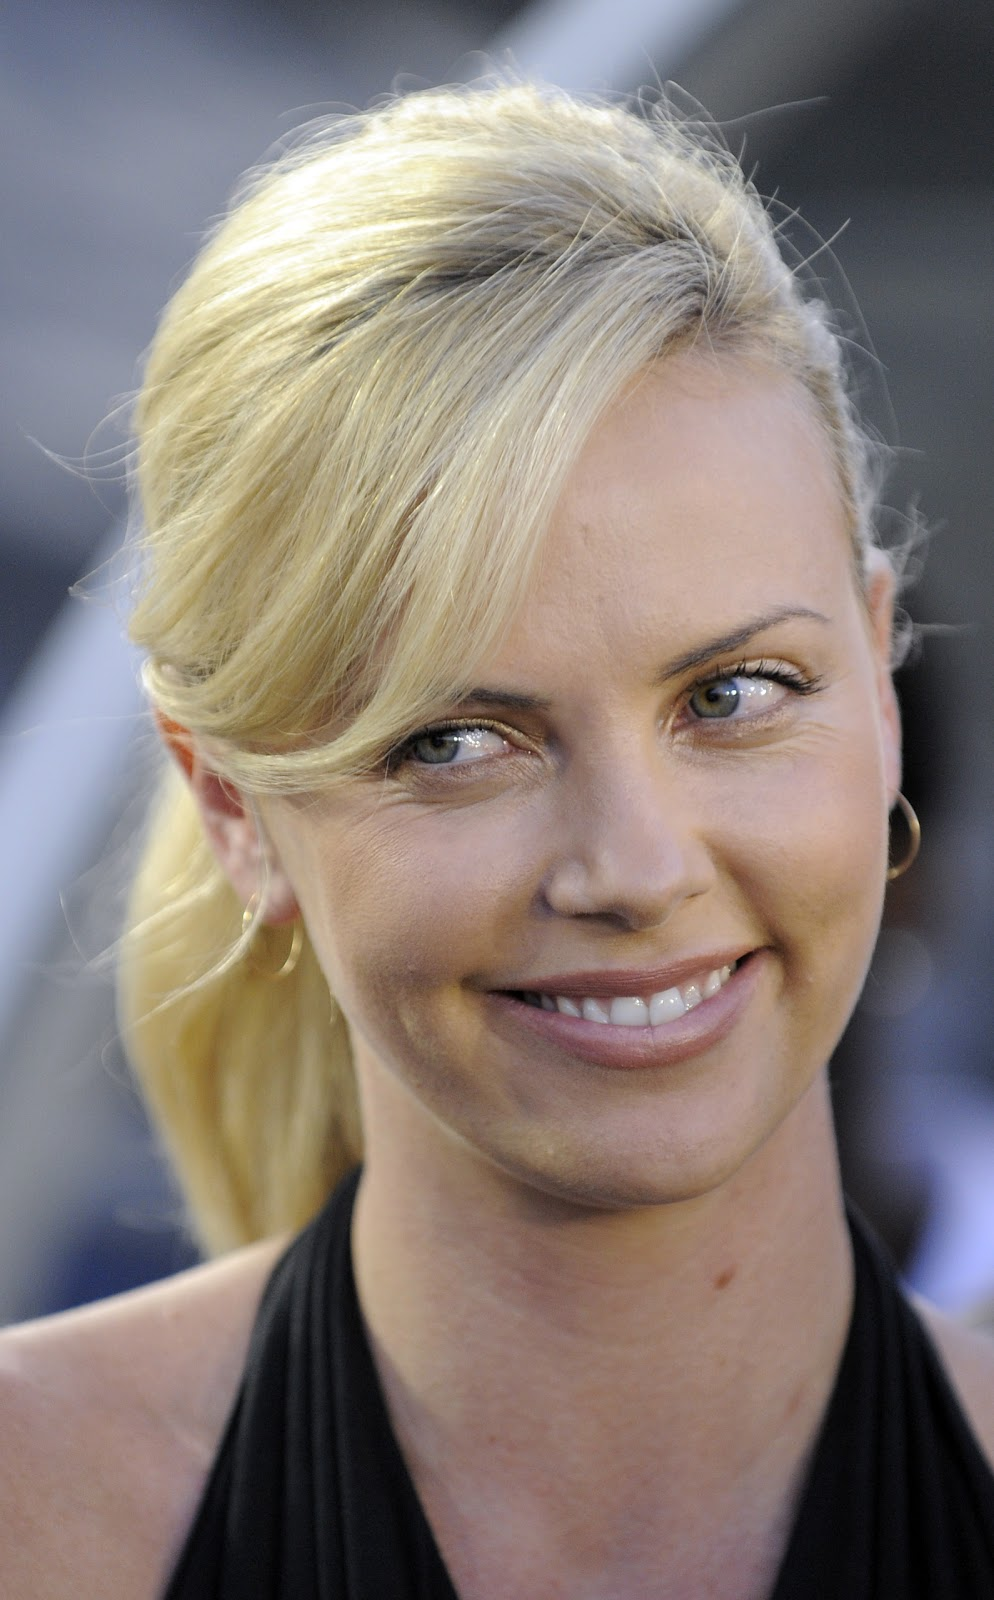 a new life hartz Charlize Theron Different Hairstyle